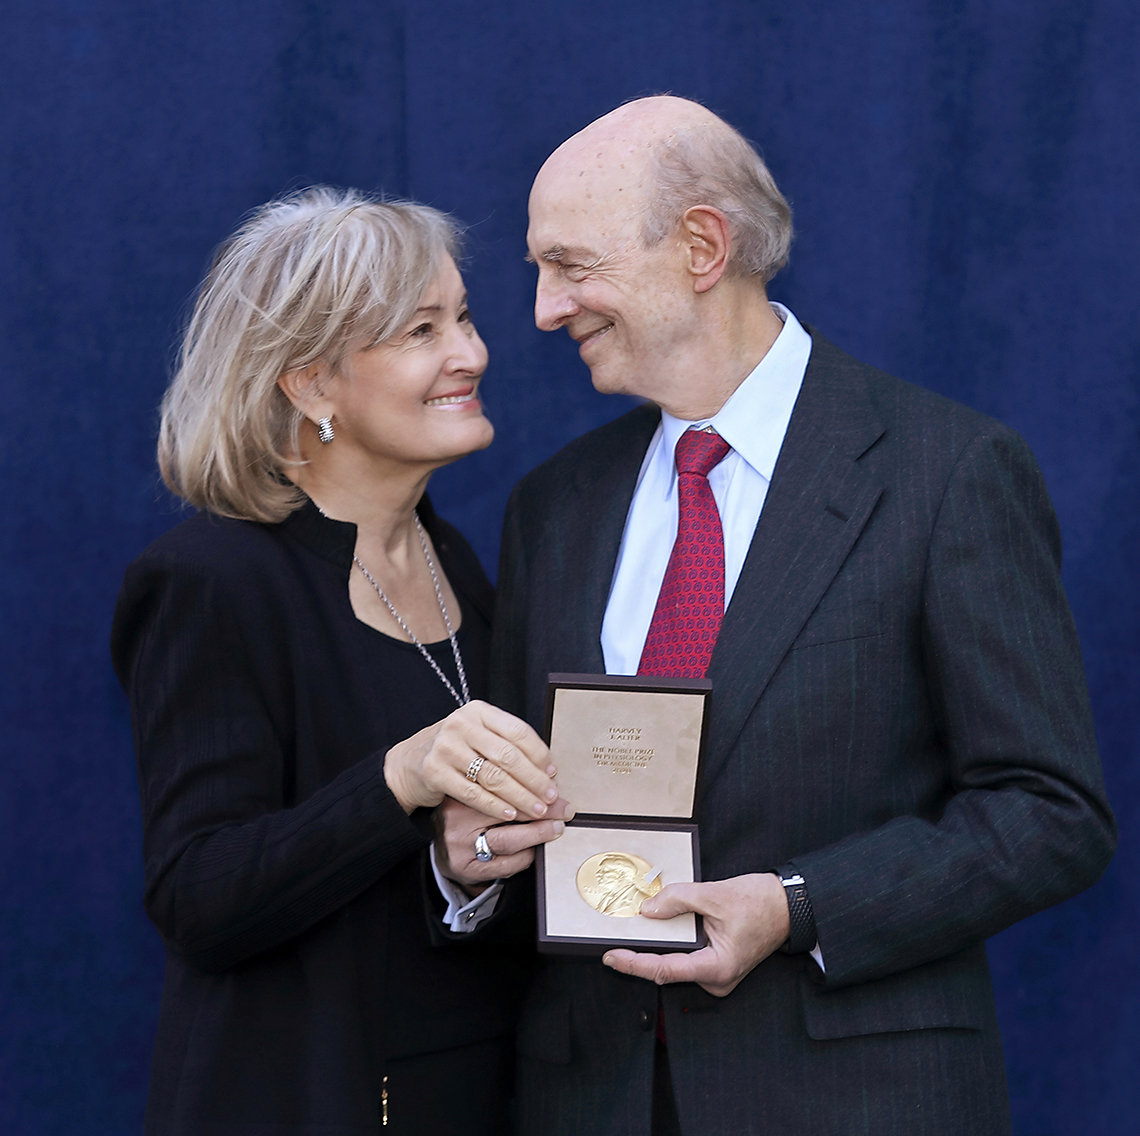 Alter and his wife look at medal.